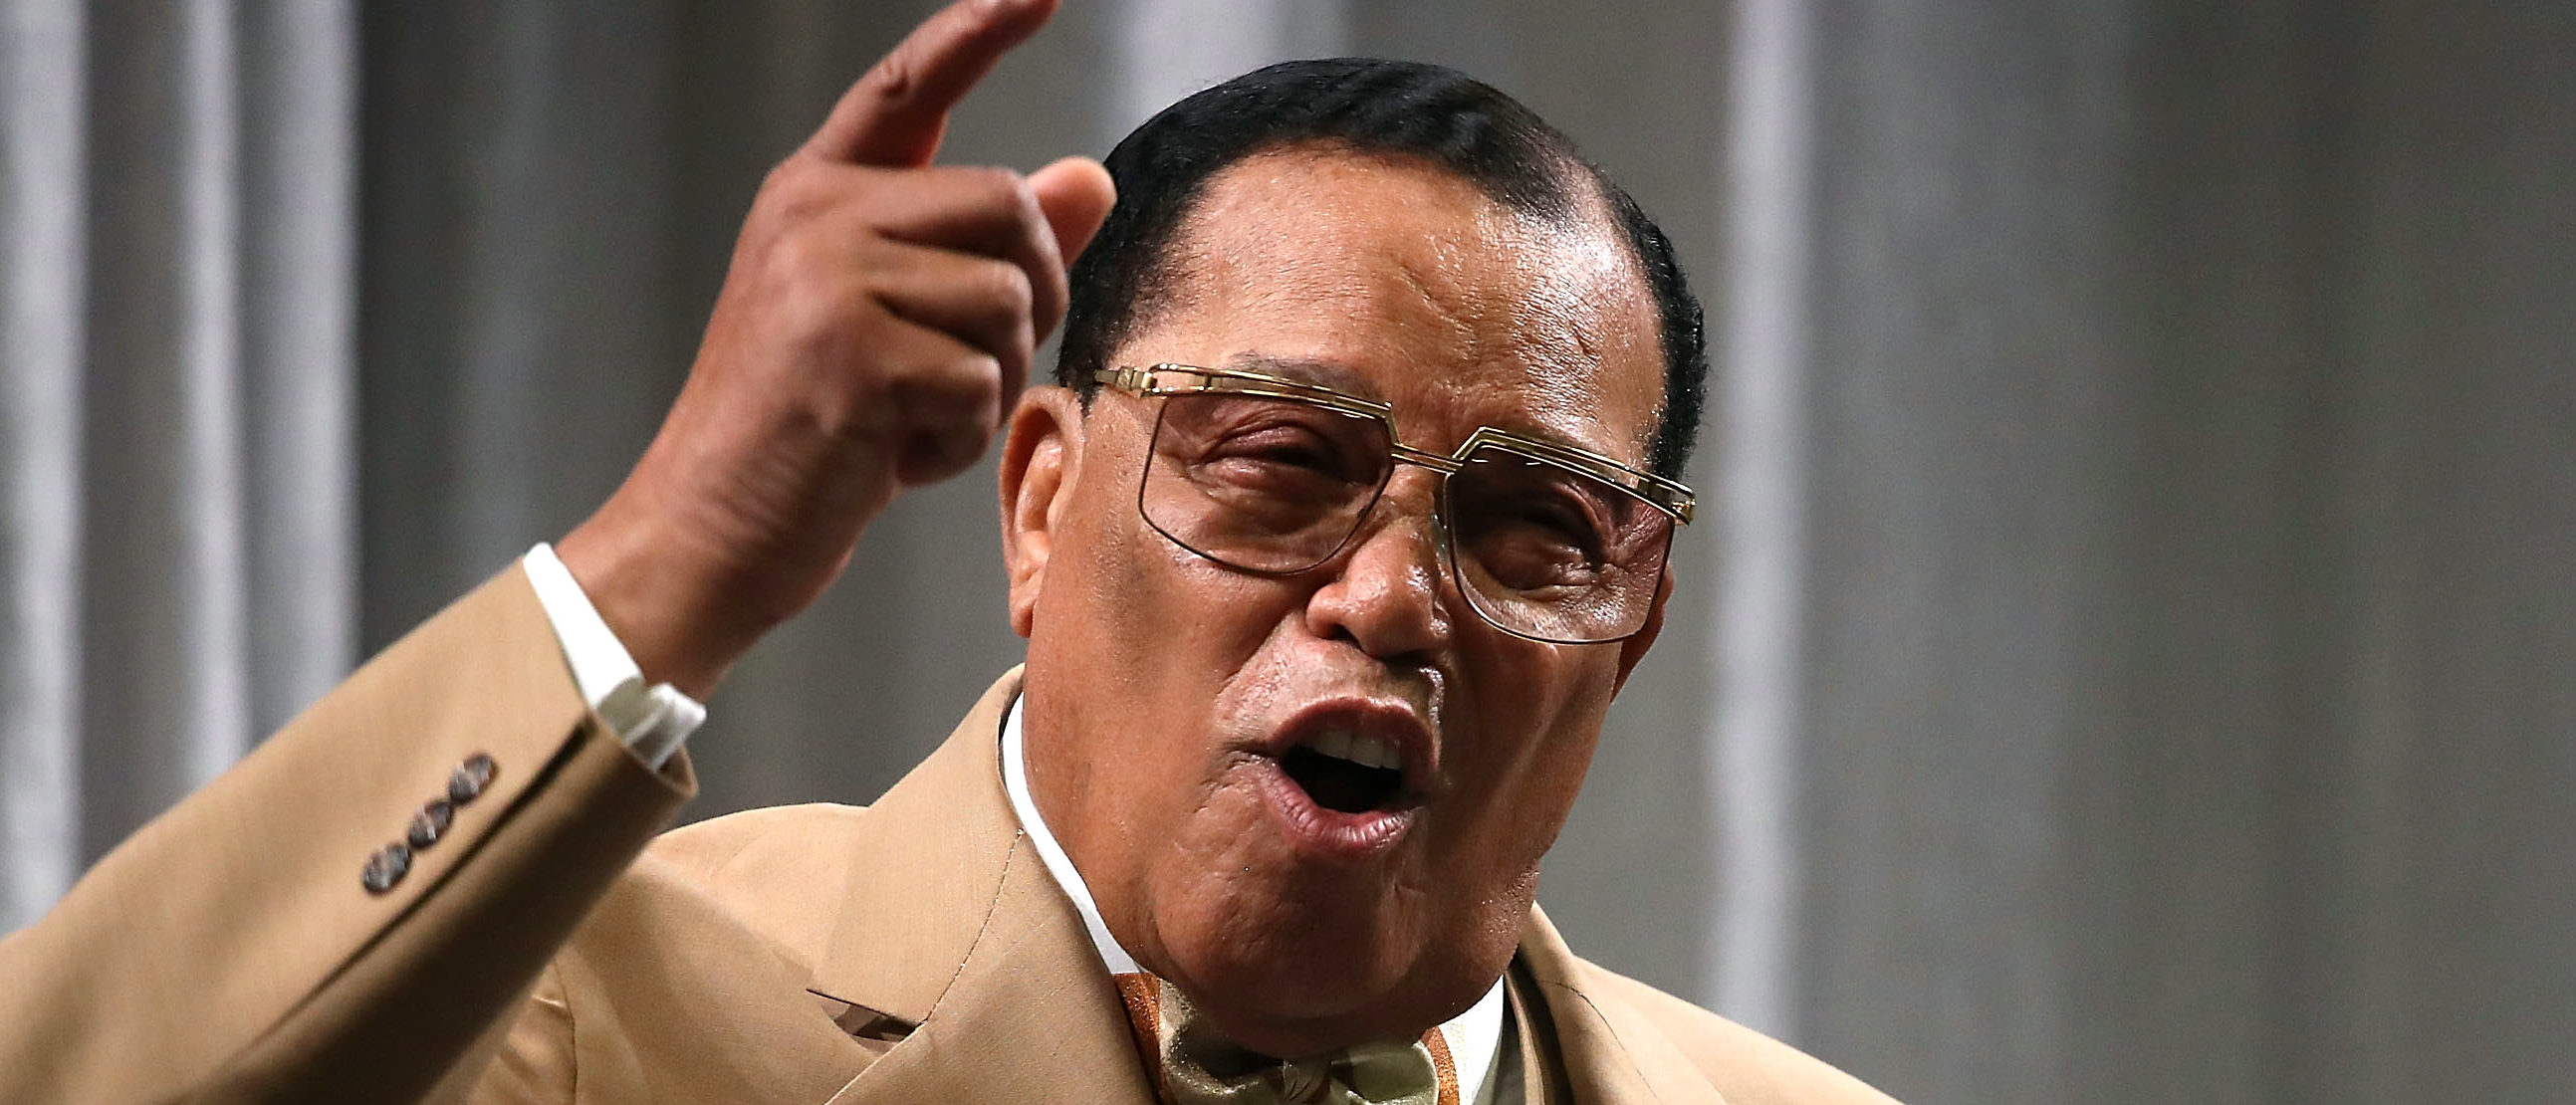 WASHINGTON, DC - NOVEMBER 16: Nation of Islam Minister Louis Farrakhan delivers a speech and talks about U.S. President Donald Trump, at the Watergate Hotel, on November 16, 2017 in Washington, DC. (Mark Wilson/Getty Images)